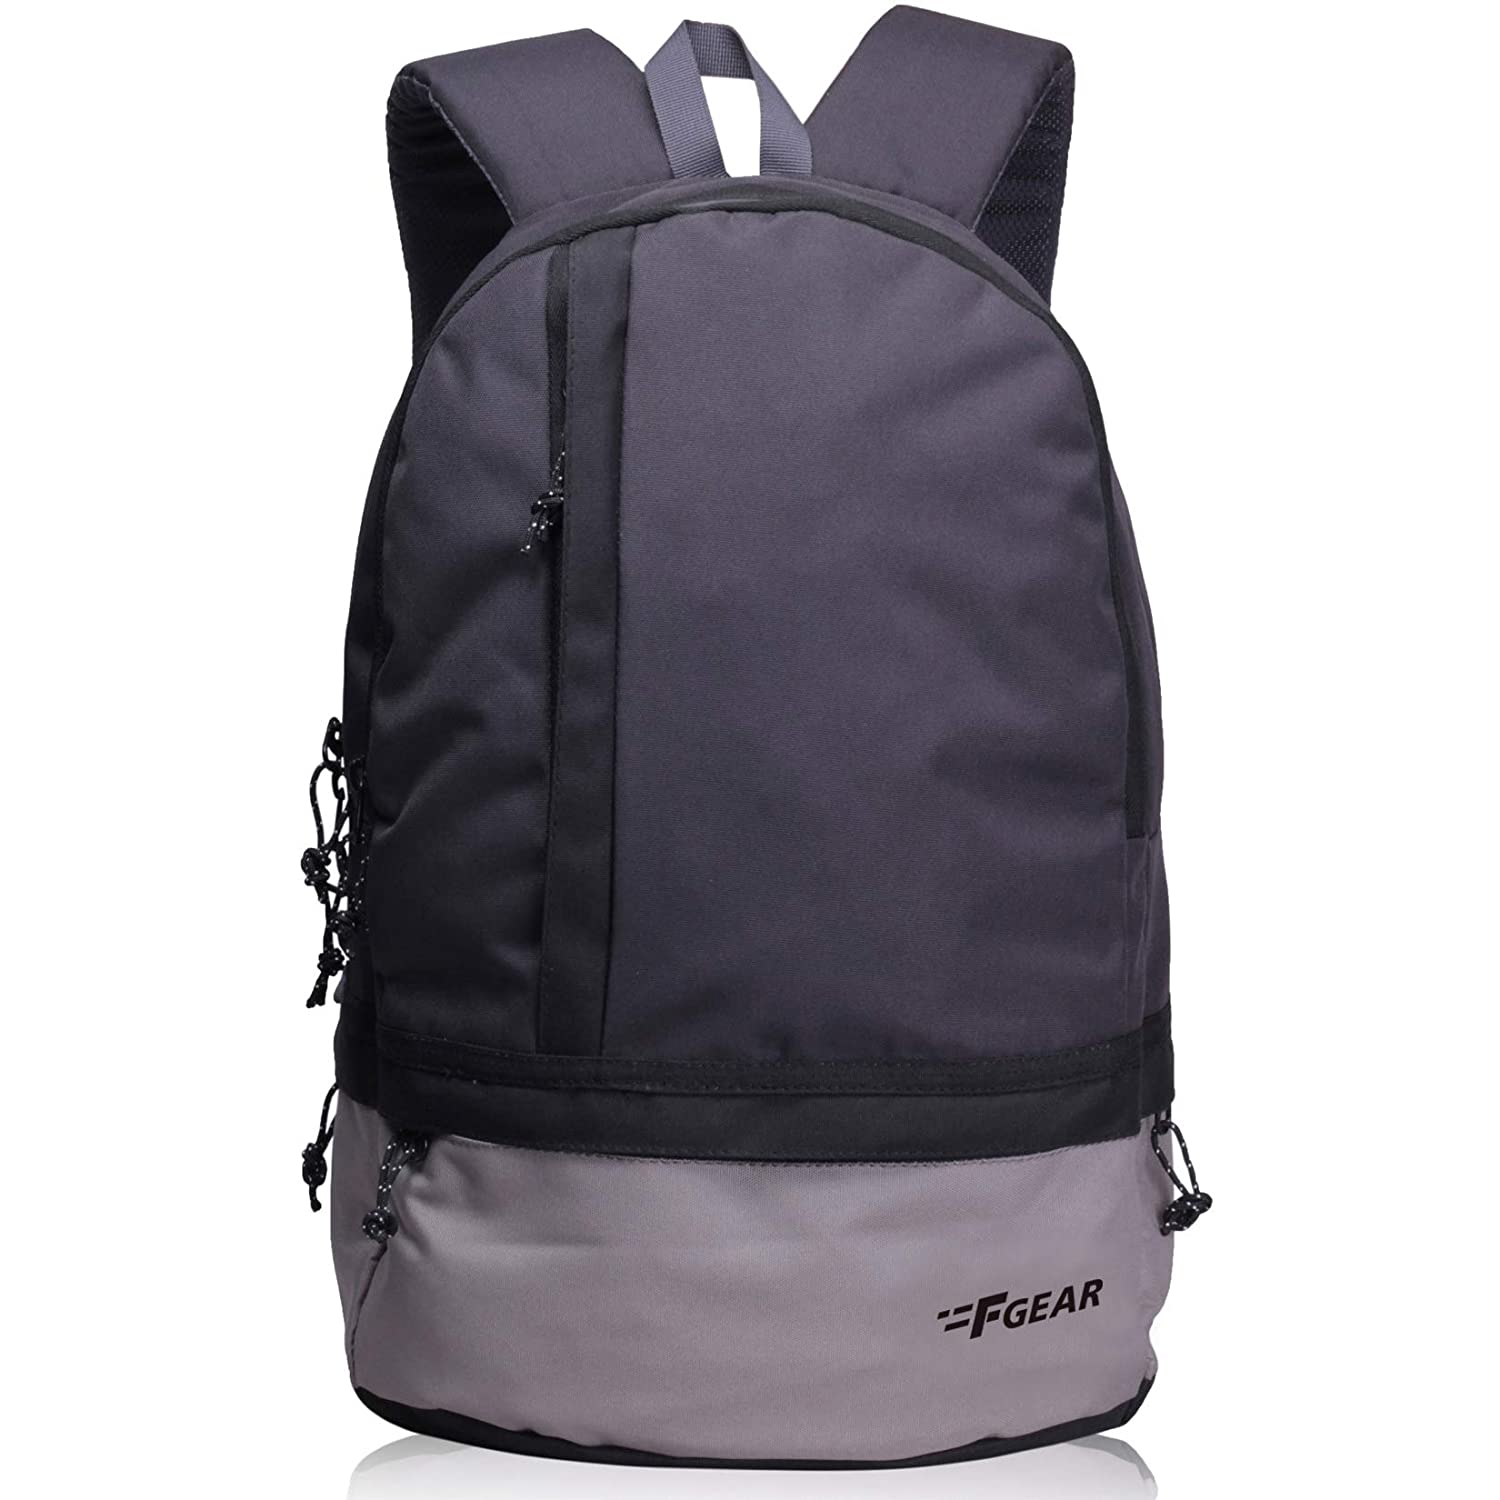 52626bb0376d F Gear Burner GB 26 Ltrs Dark Grey Casual Laptop Backpack (2449)   Amazon.in  Bags